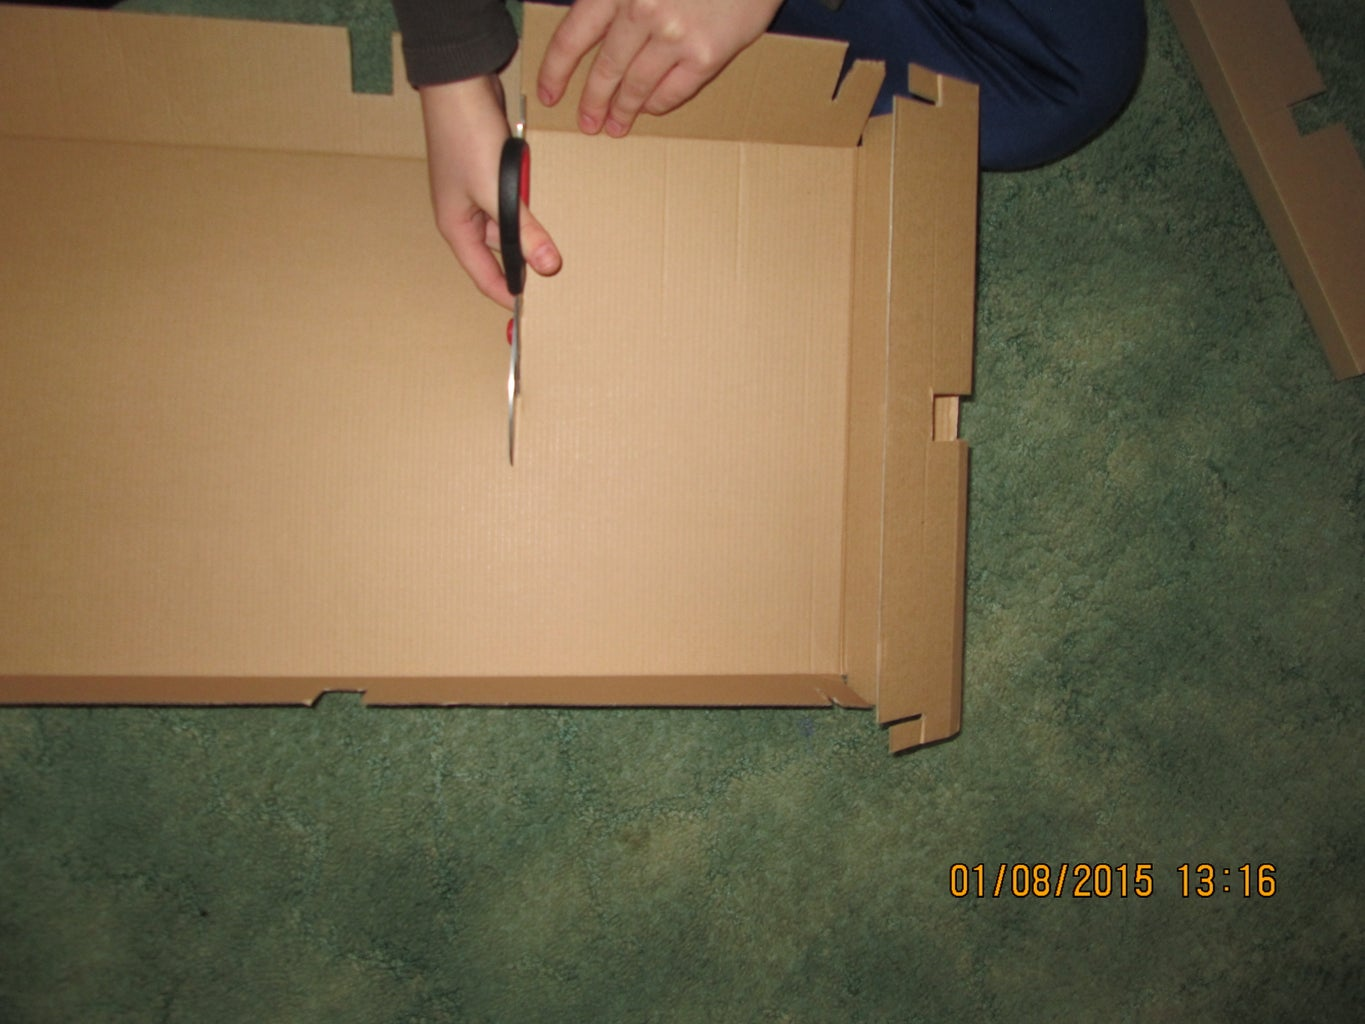 Step 1: Getting the Box Ready